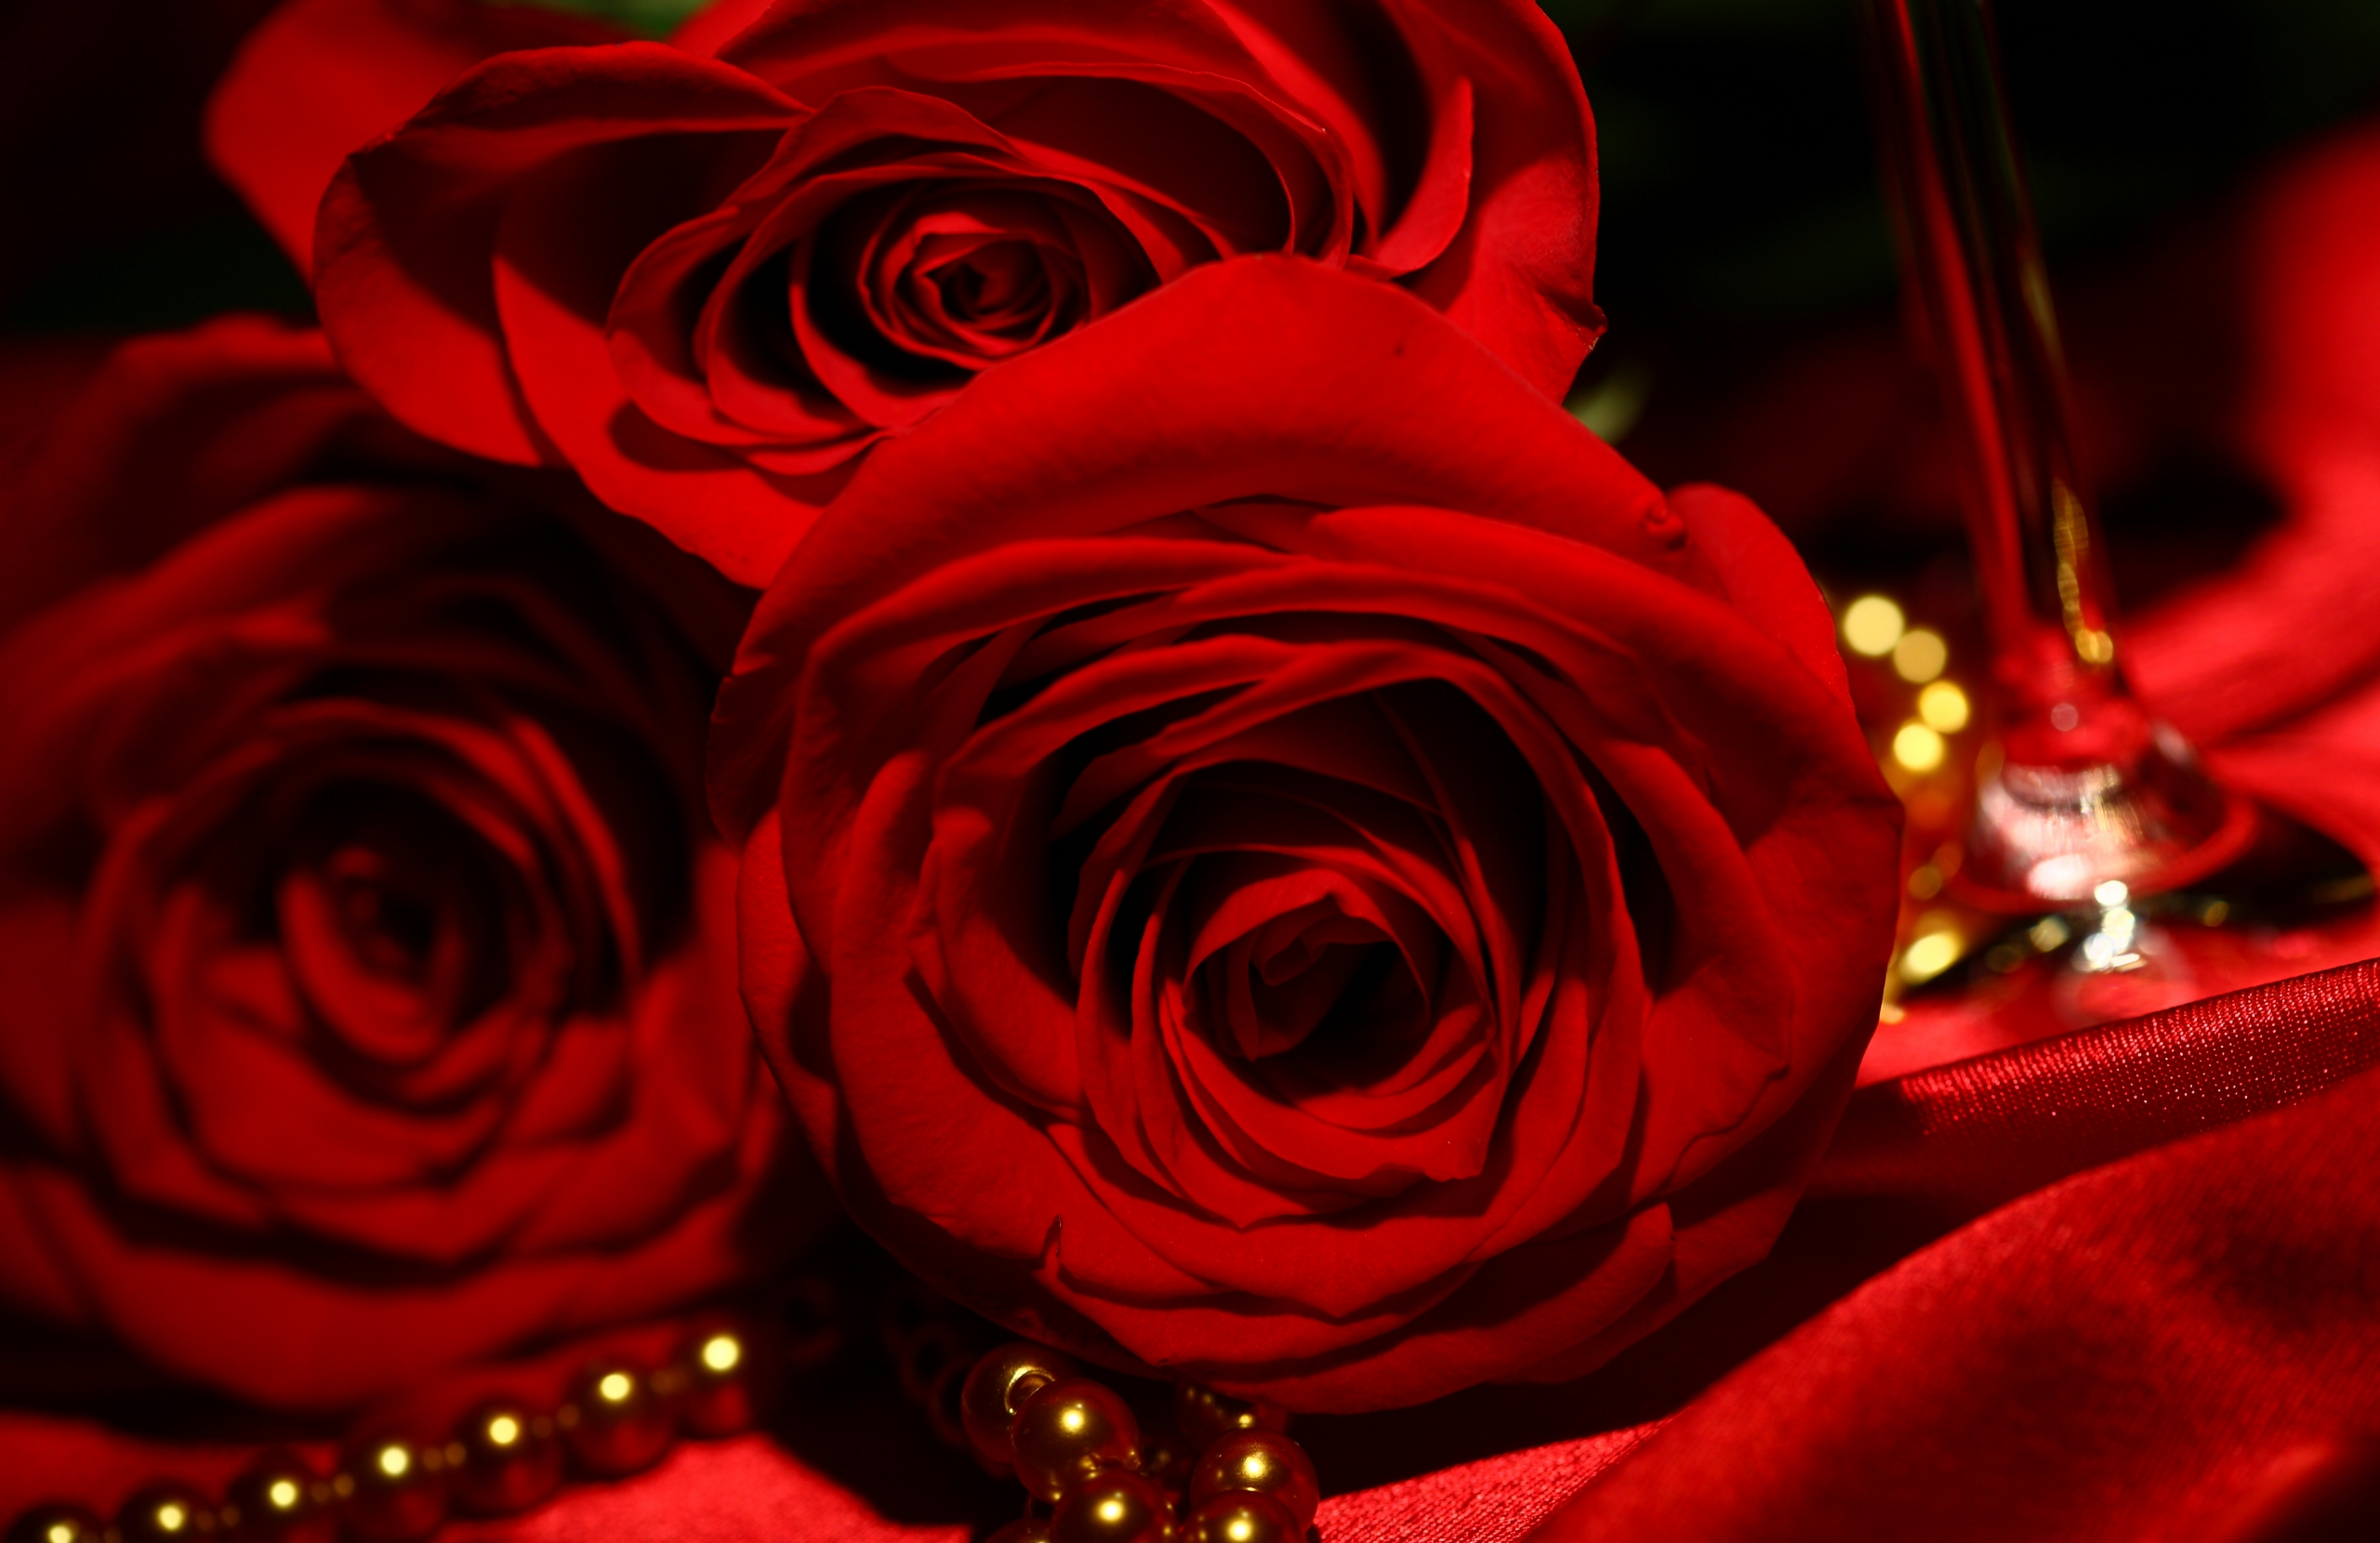 Red Roses Wallpapers HD A39 beads